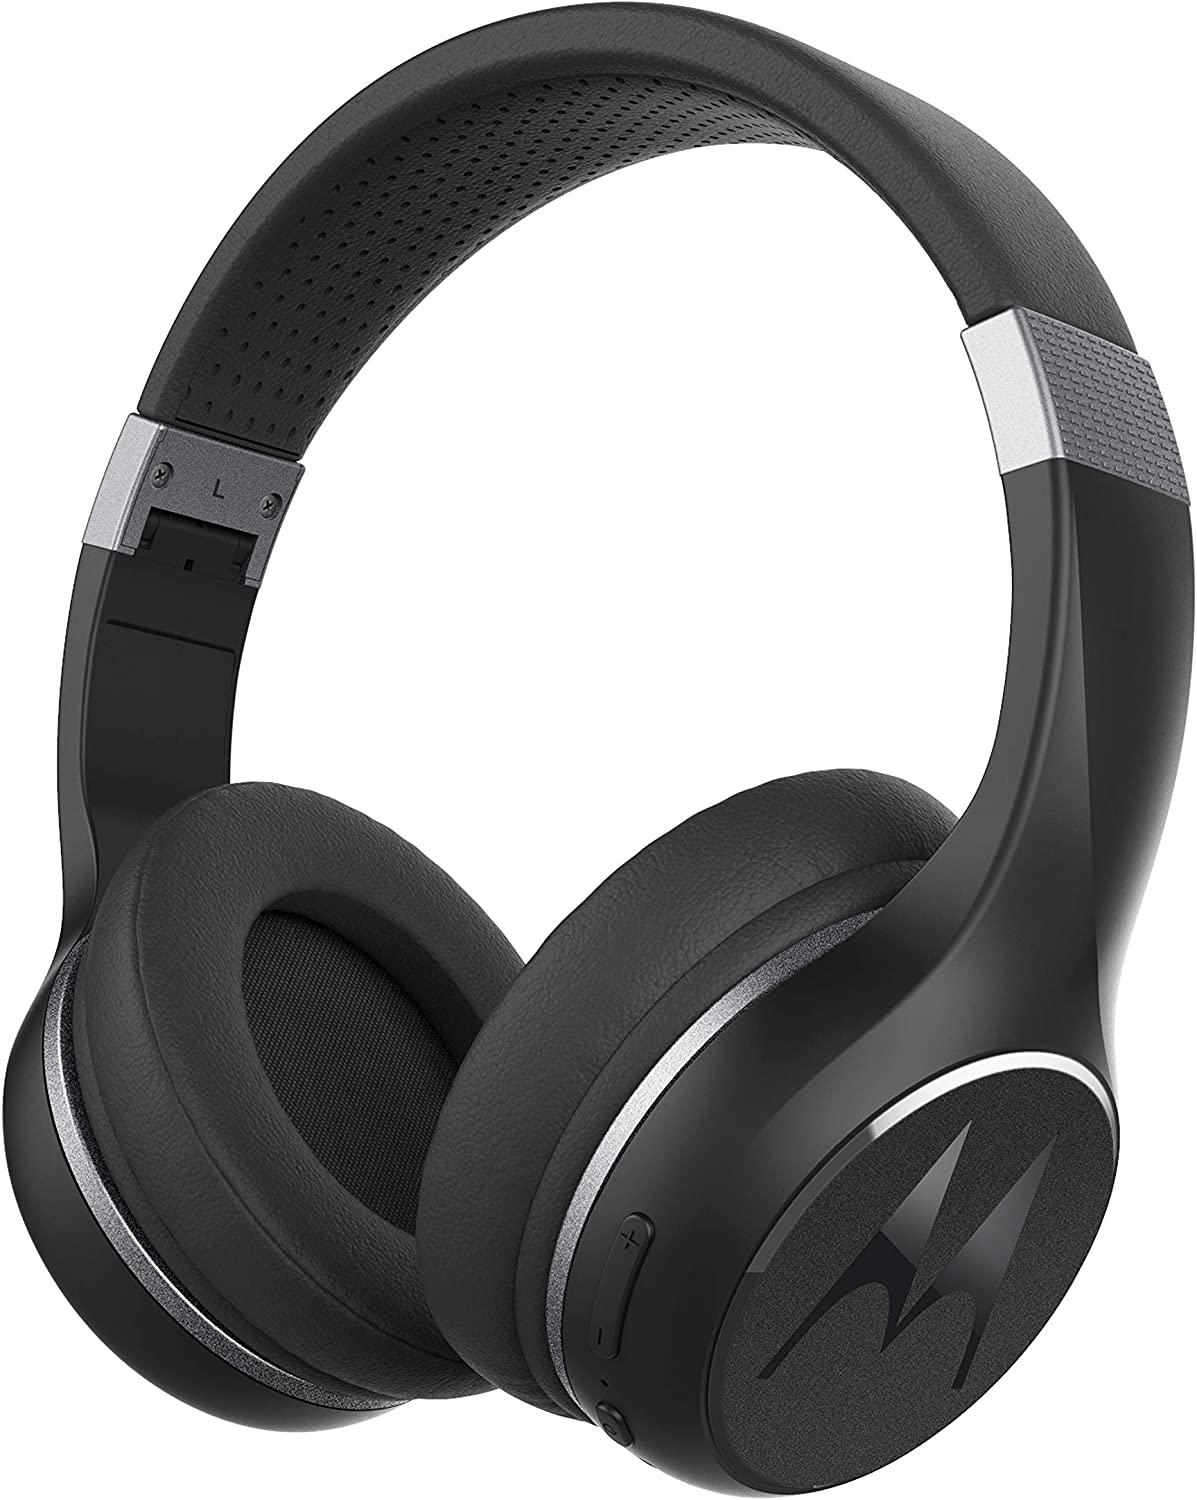 Motorola Escape 220 Over-The-Ear Bluetooth Wireless Headphones - HD Sound, Built-in Microphone, 23-Hour Play Time, Noise Isolation - Foldable & Compact - Black